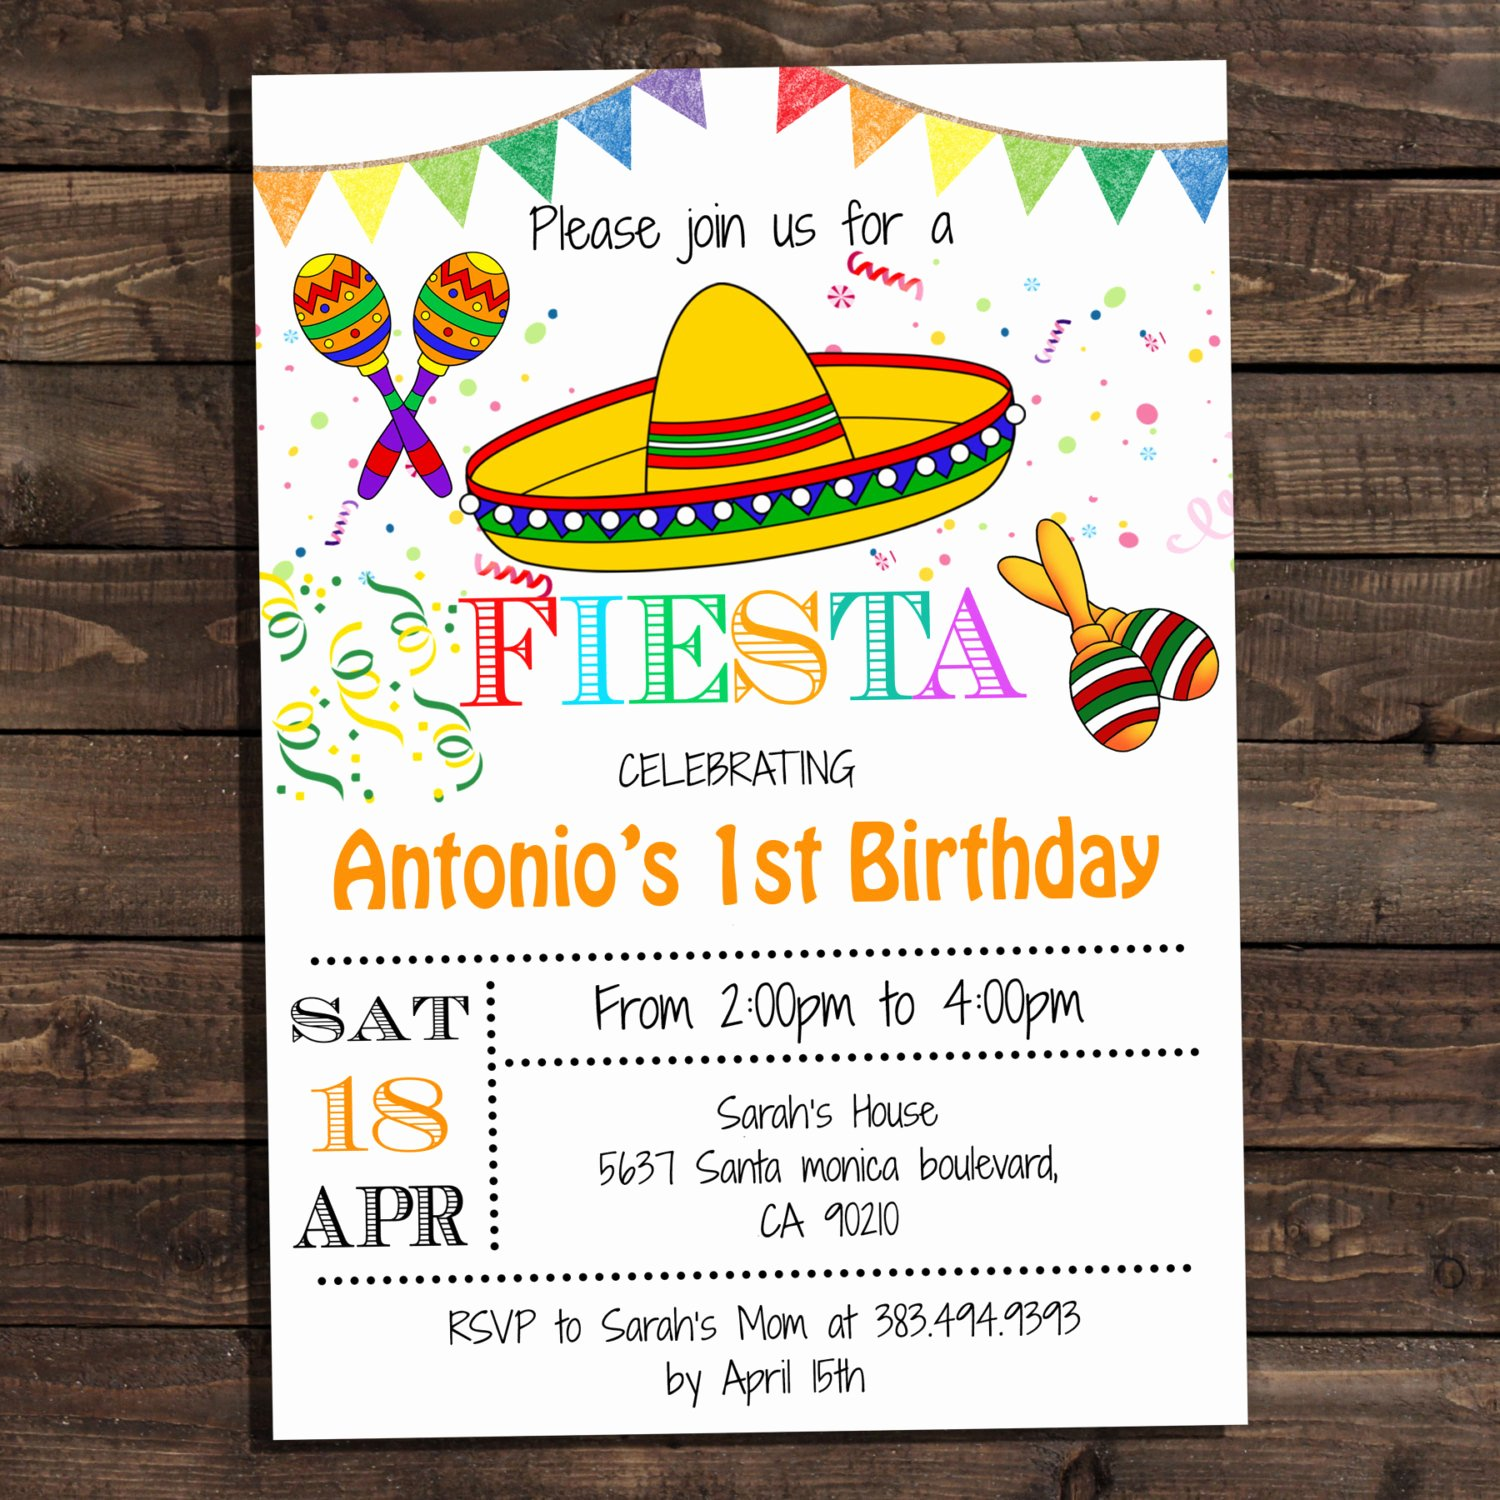 Fiesta Party Invitation Template Elegant White Fiesta Birthday Party Invitations Digital Printable